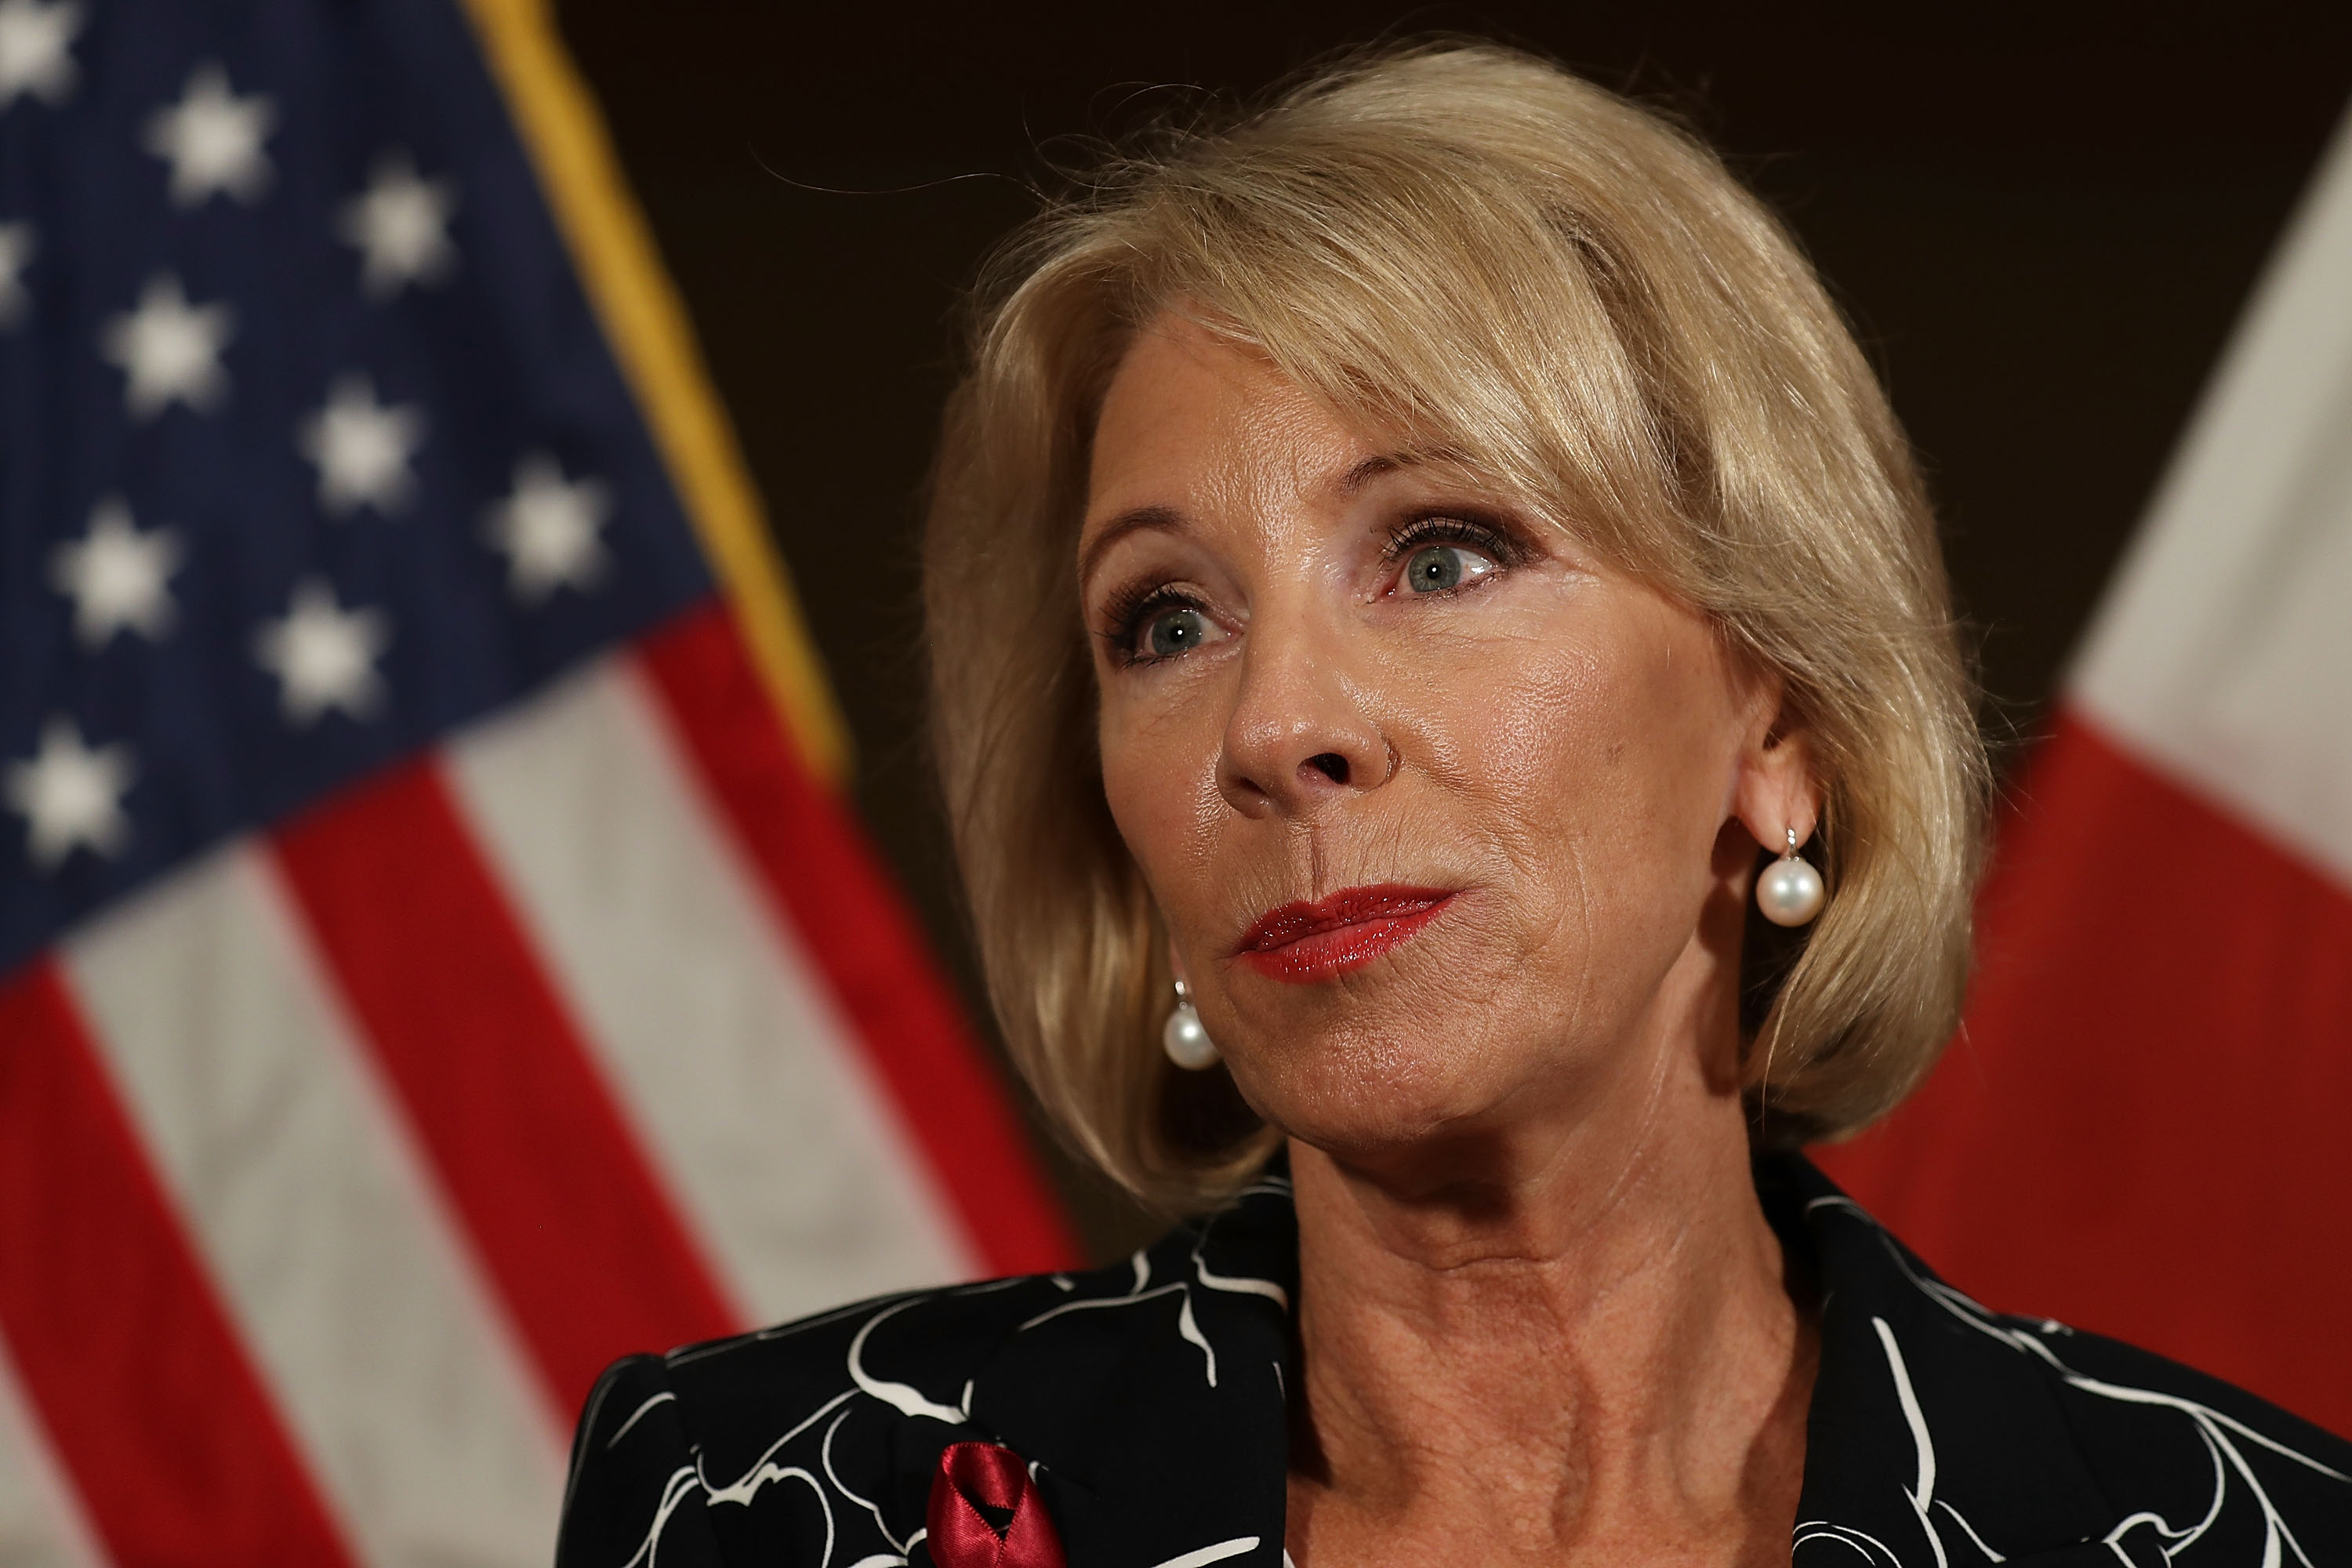 Education Secretary Betsy DeVos speaks to the news during a press conference held at the Heron Bay Marriott about her visit to Marjory Stoneman Douglas High School in Parkland on March 7, 2018 in Coral Springs, Fla.